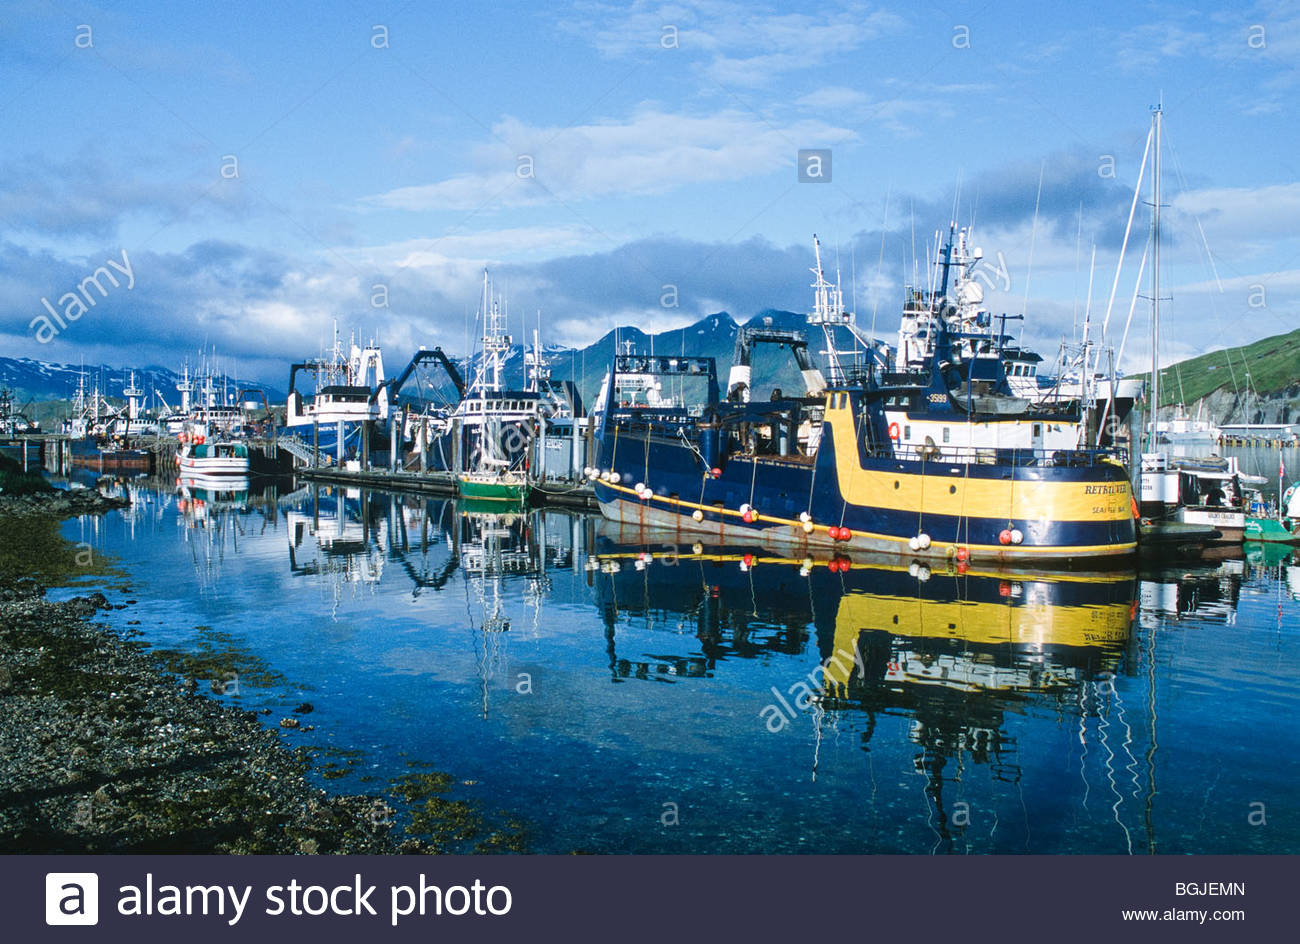 Grand aleutian hotel in dutch harbor - Dutch Harbor Unalaska A Busy Fishing Port In The Aleutian Islands